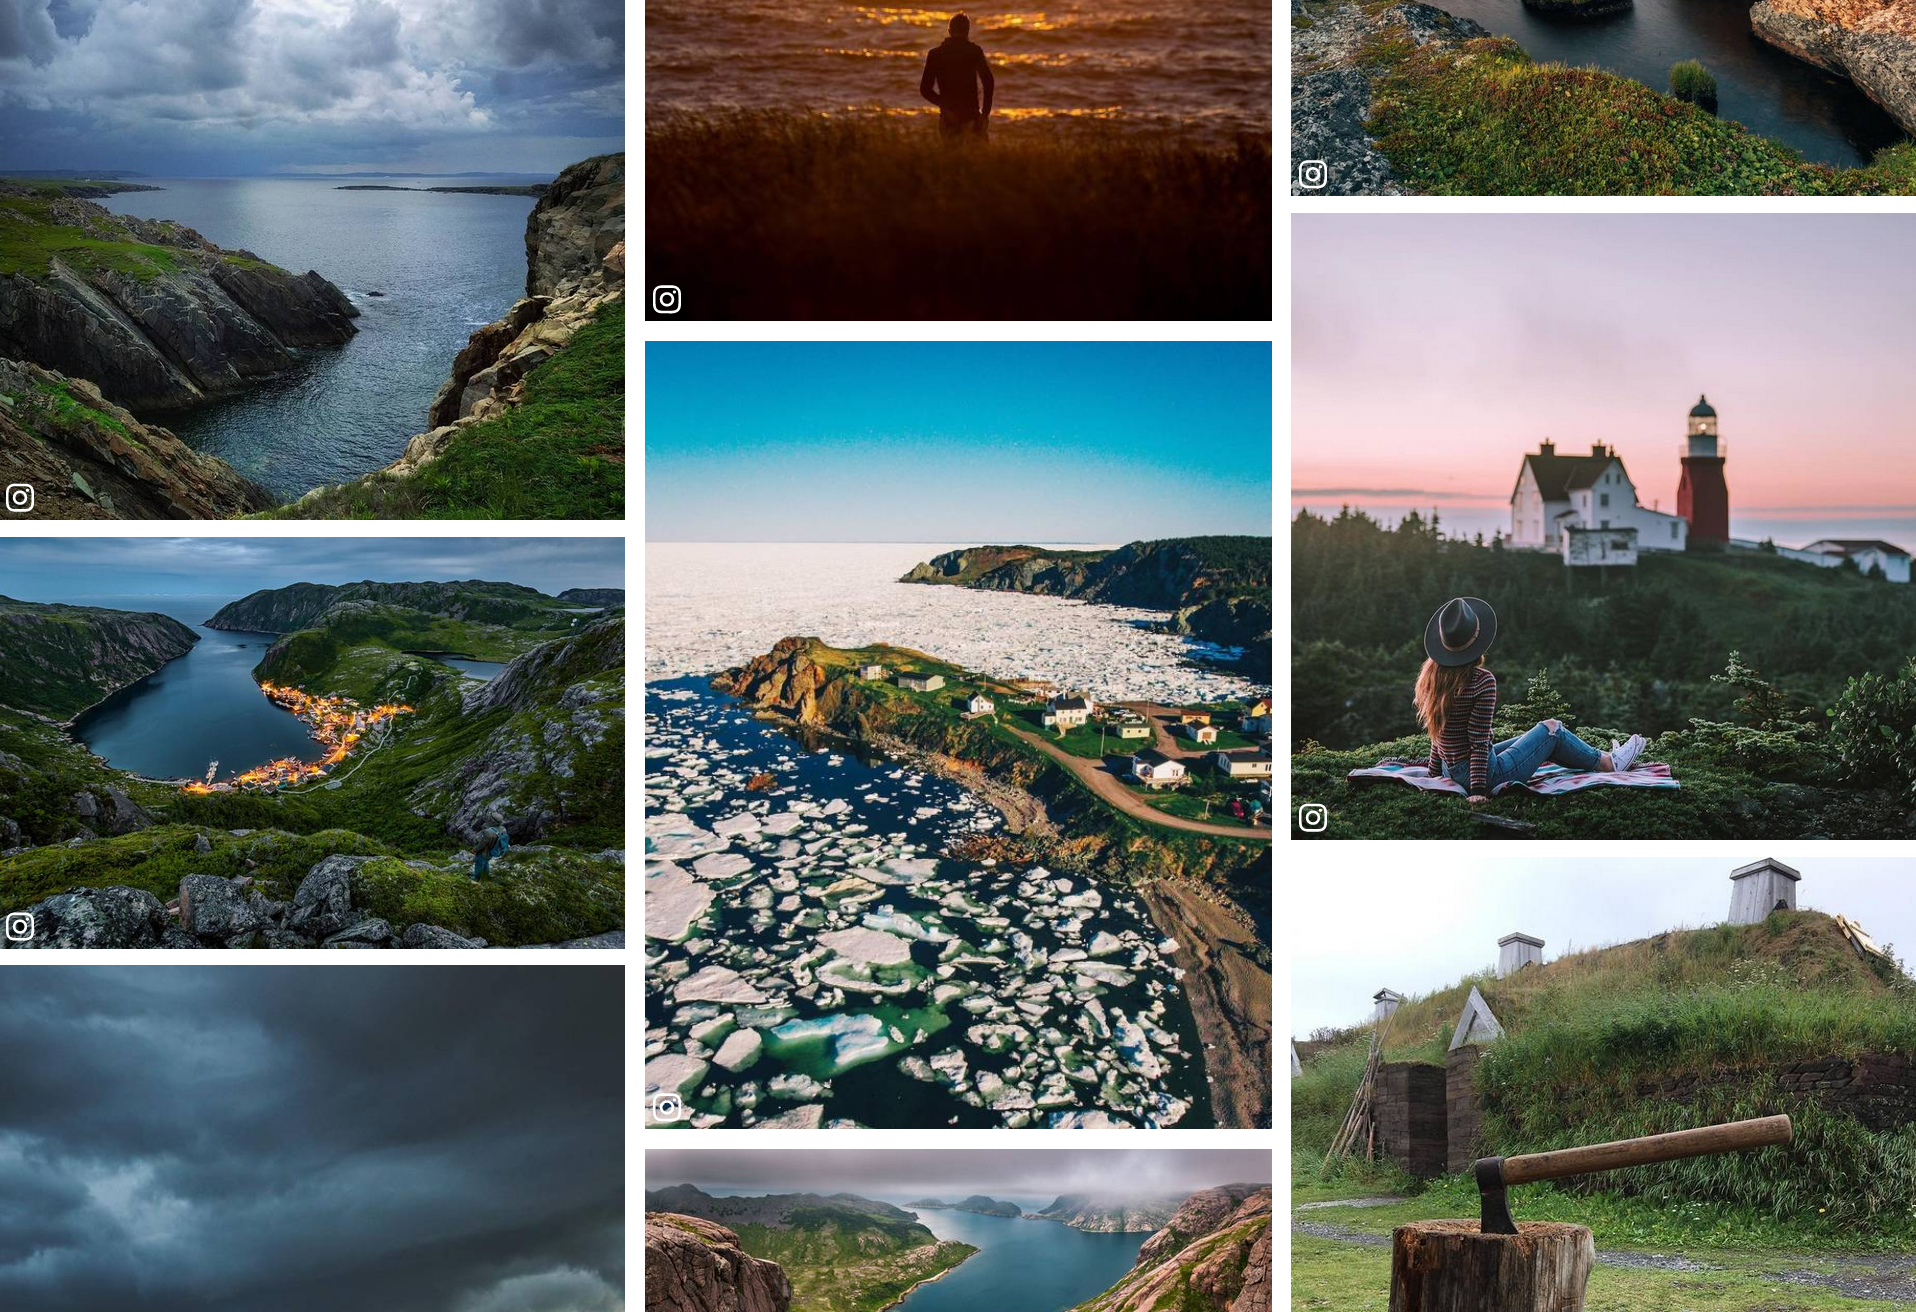 Scenic photos of Newfoundland in a gallery